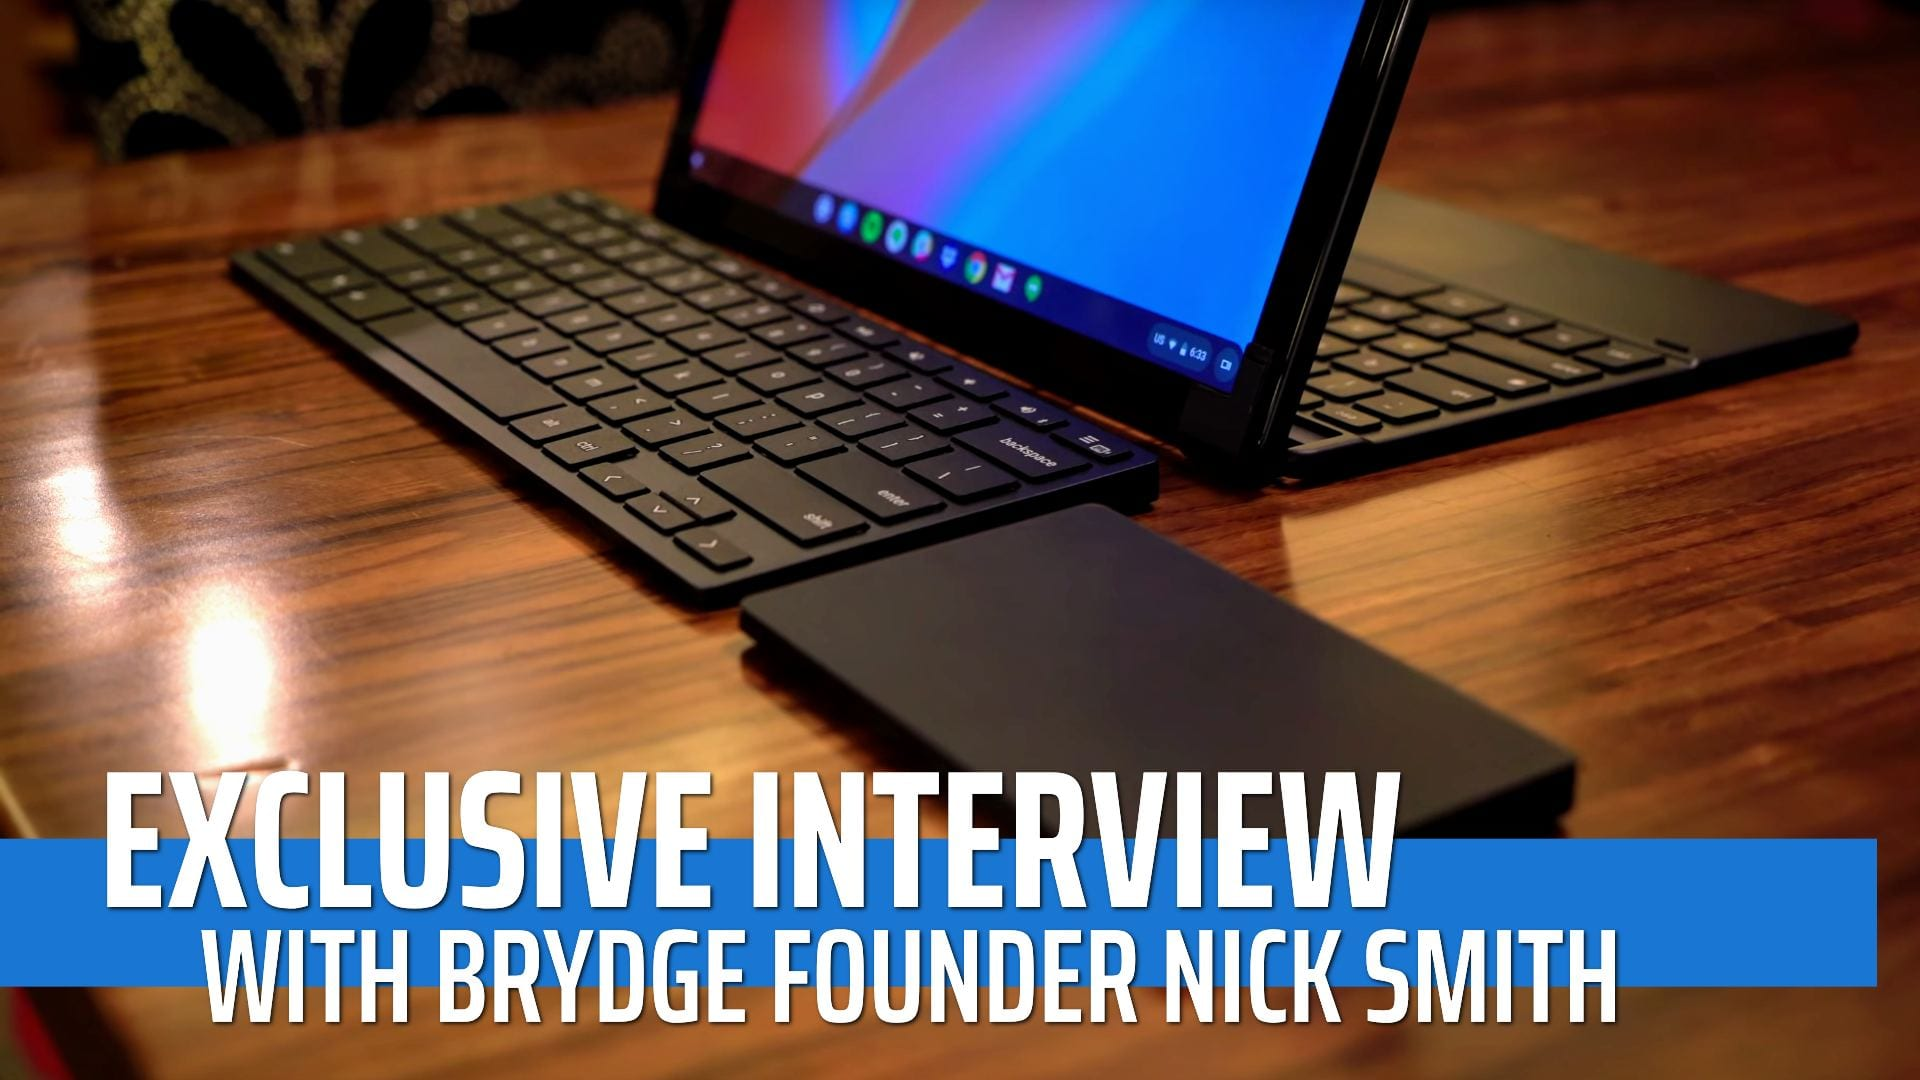 Exclusive Behind-The-Scenes Interview With Brydge Founder Nick Smith [VIDEO]